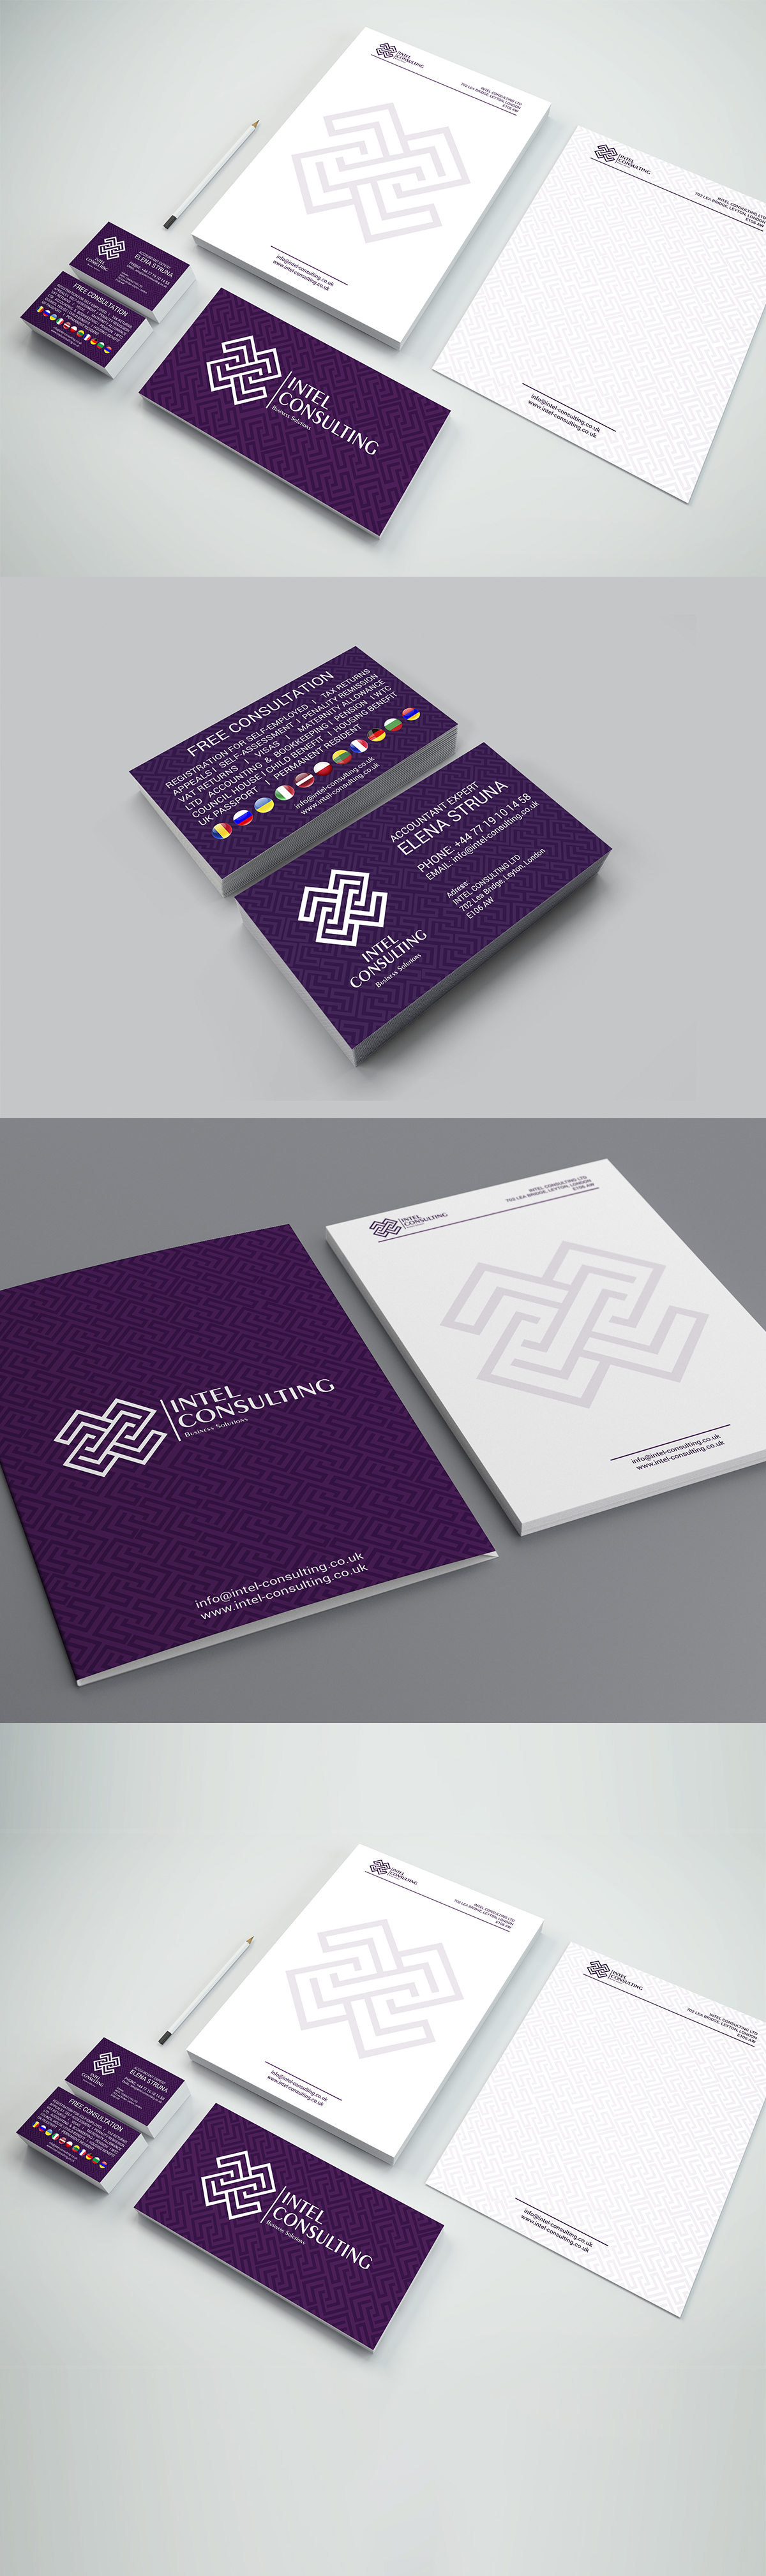 BRANDING OFFICE IDENTITY UI FOLDERS BLANKS BUSINESS CARDS CUPS ...